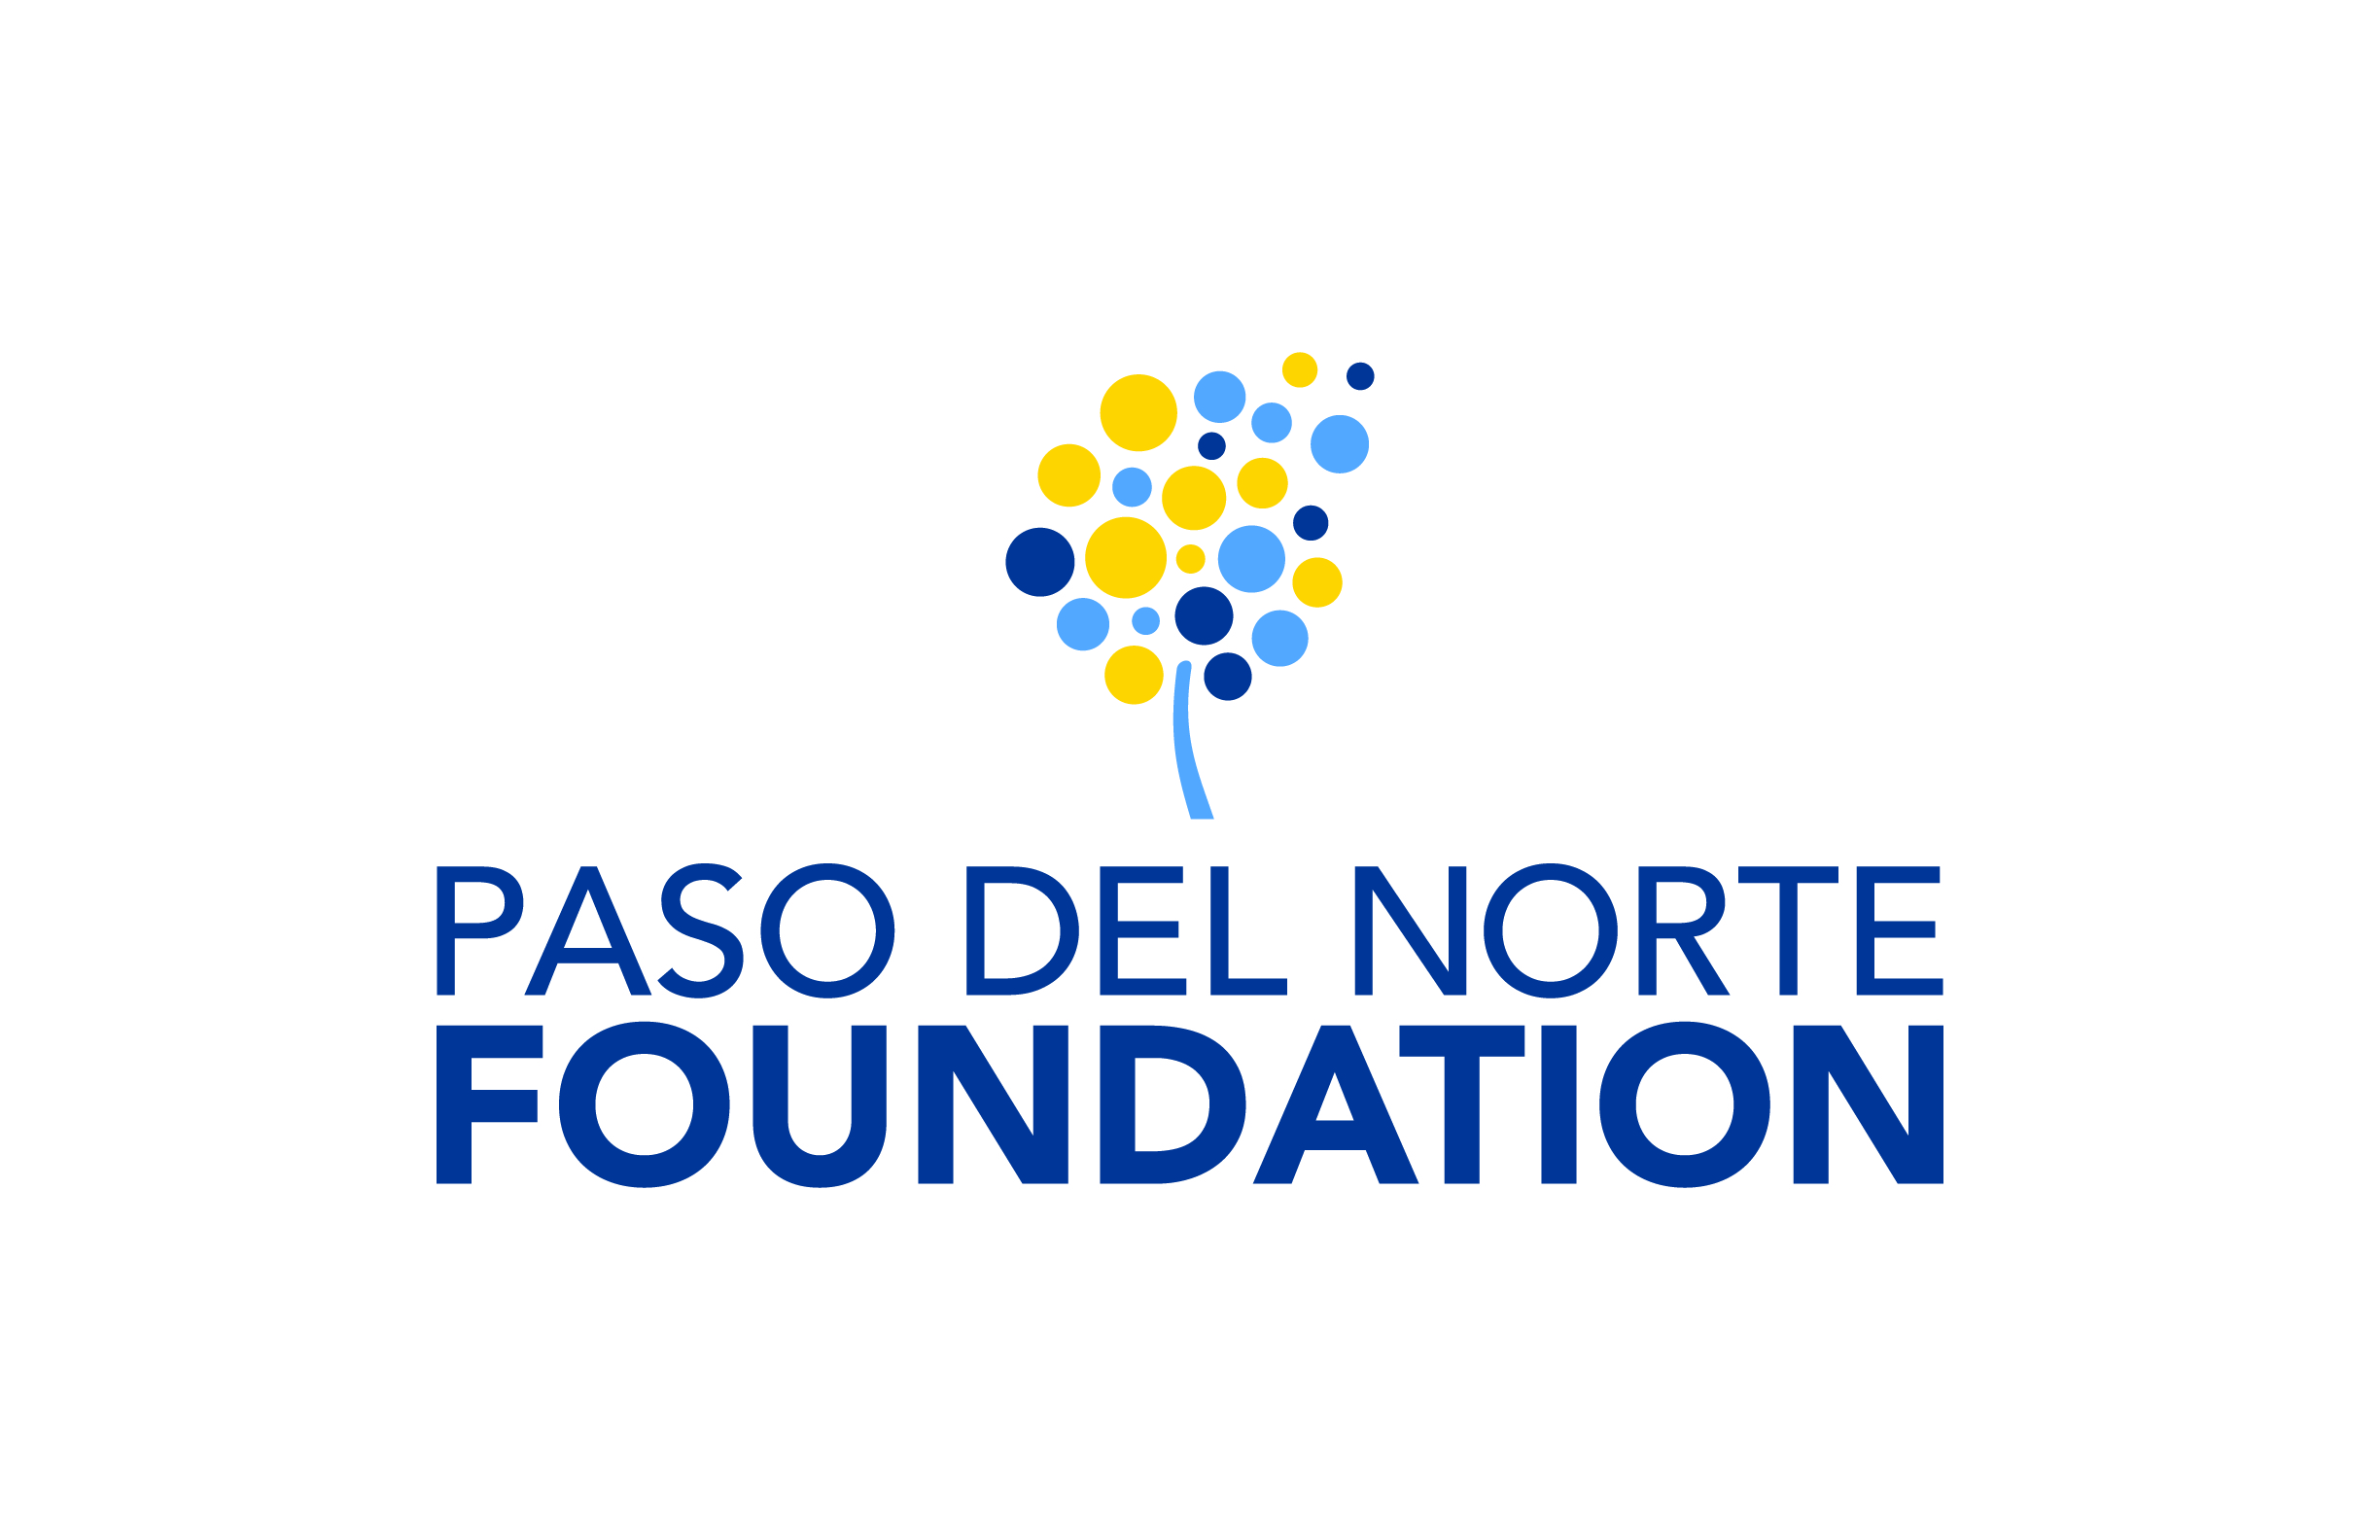 PDN 18-05 Charitable Foundation Refresh Logo-01.jpg